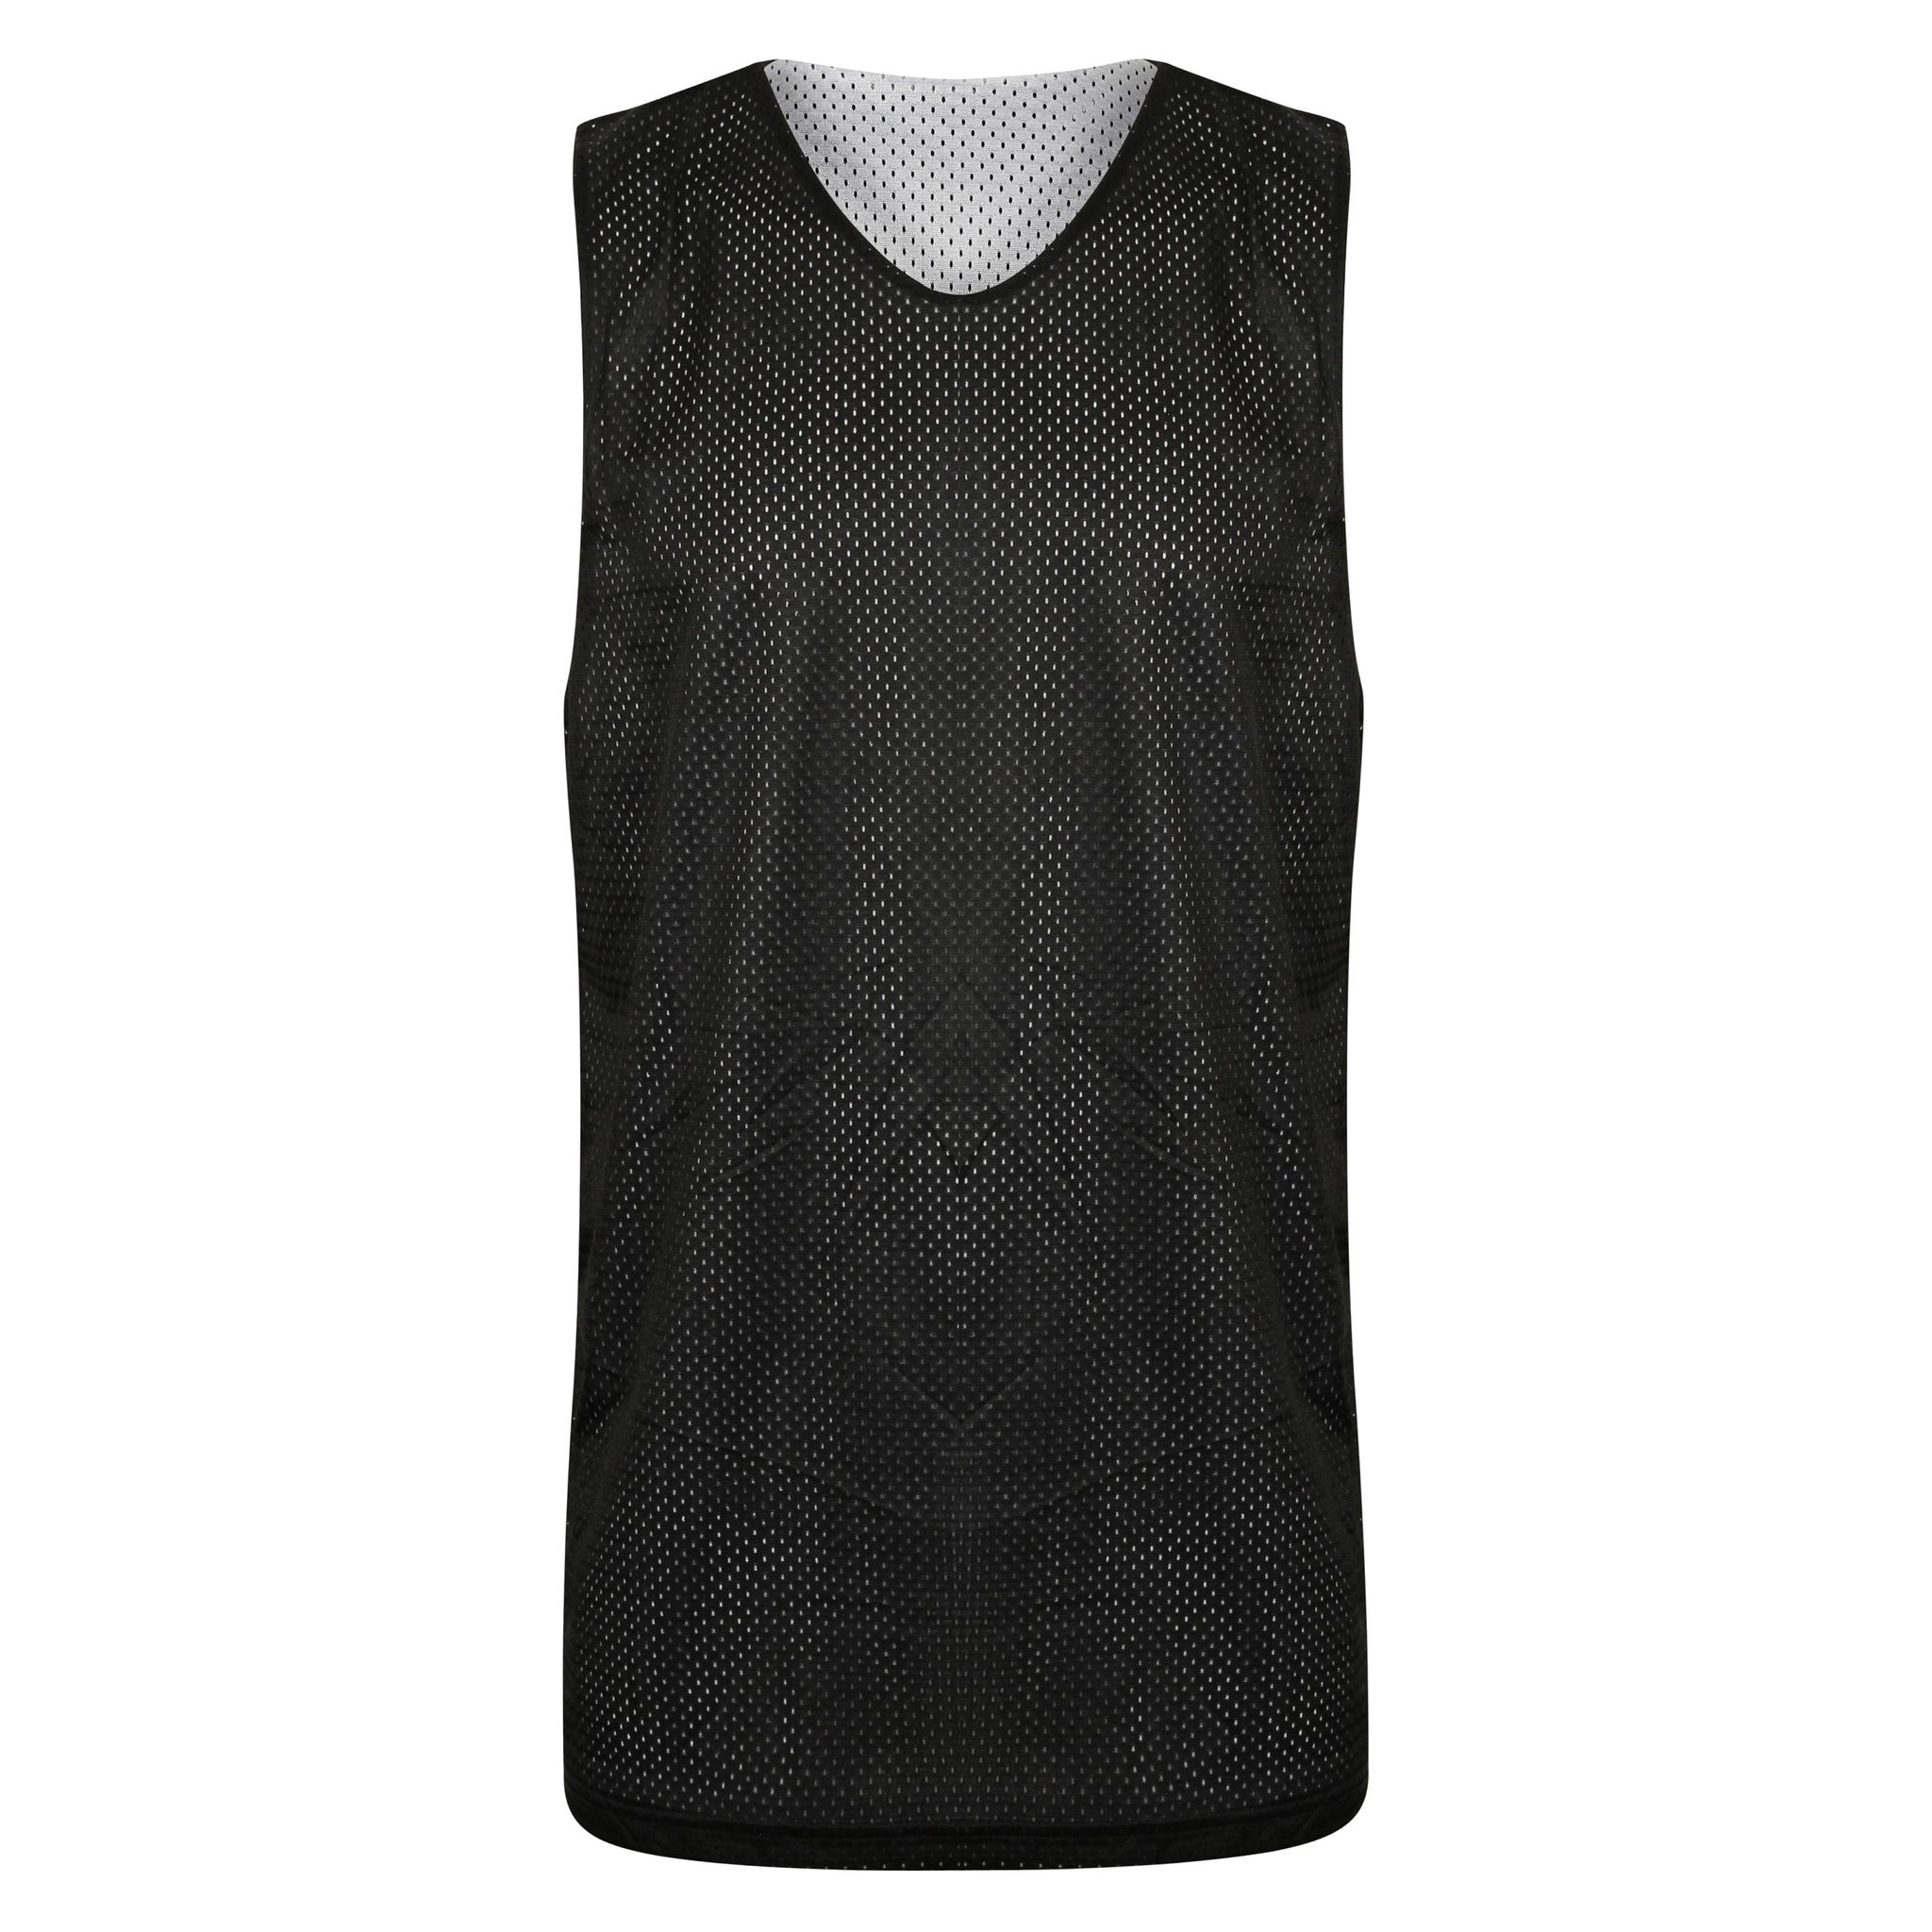 STARTING 5 Manhattan Lightweight Reversible Basketball Training Vest Black/White